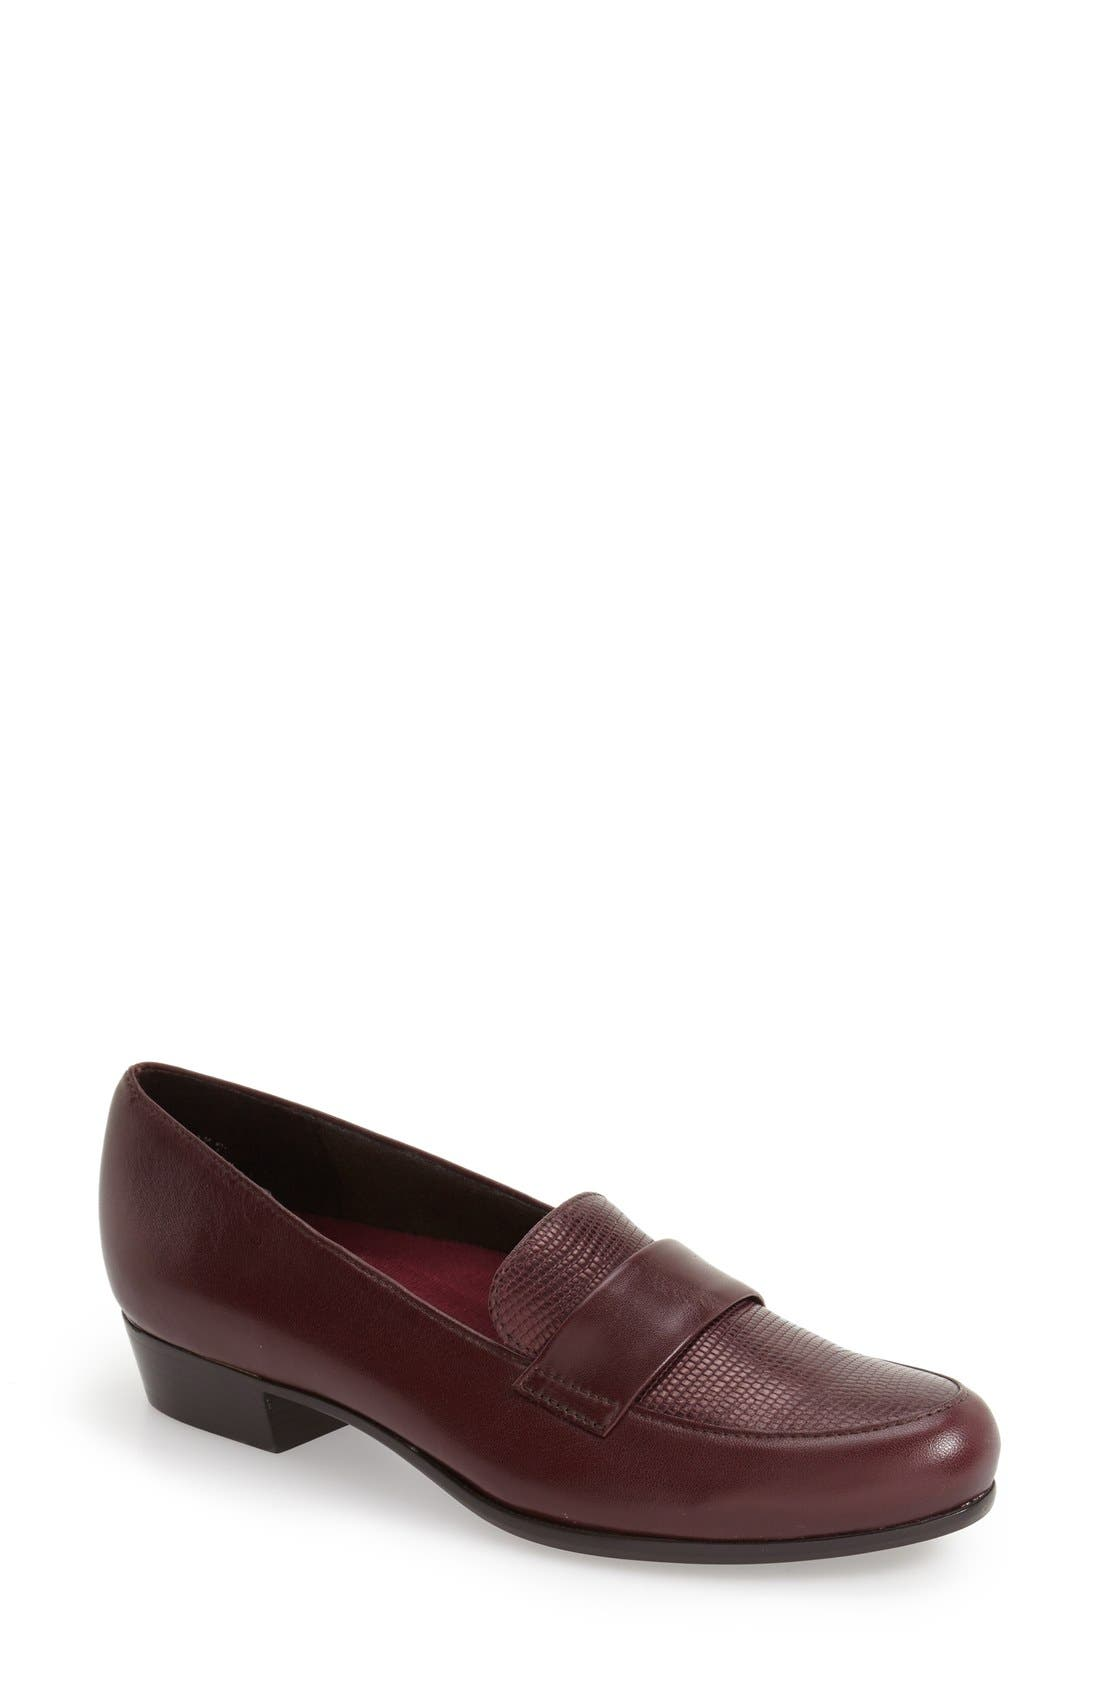 'Kiera' Loafer,                             Main thumbnail 1, color,                             Wine Lizard Print Leather